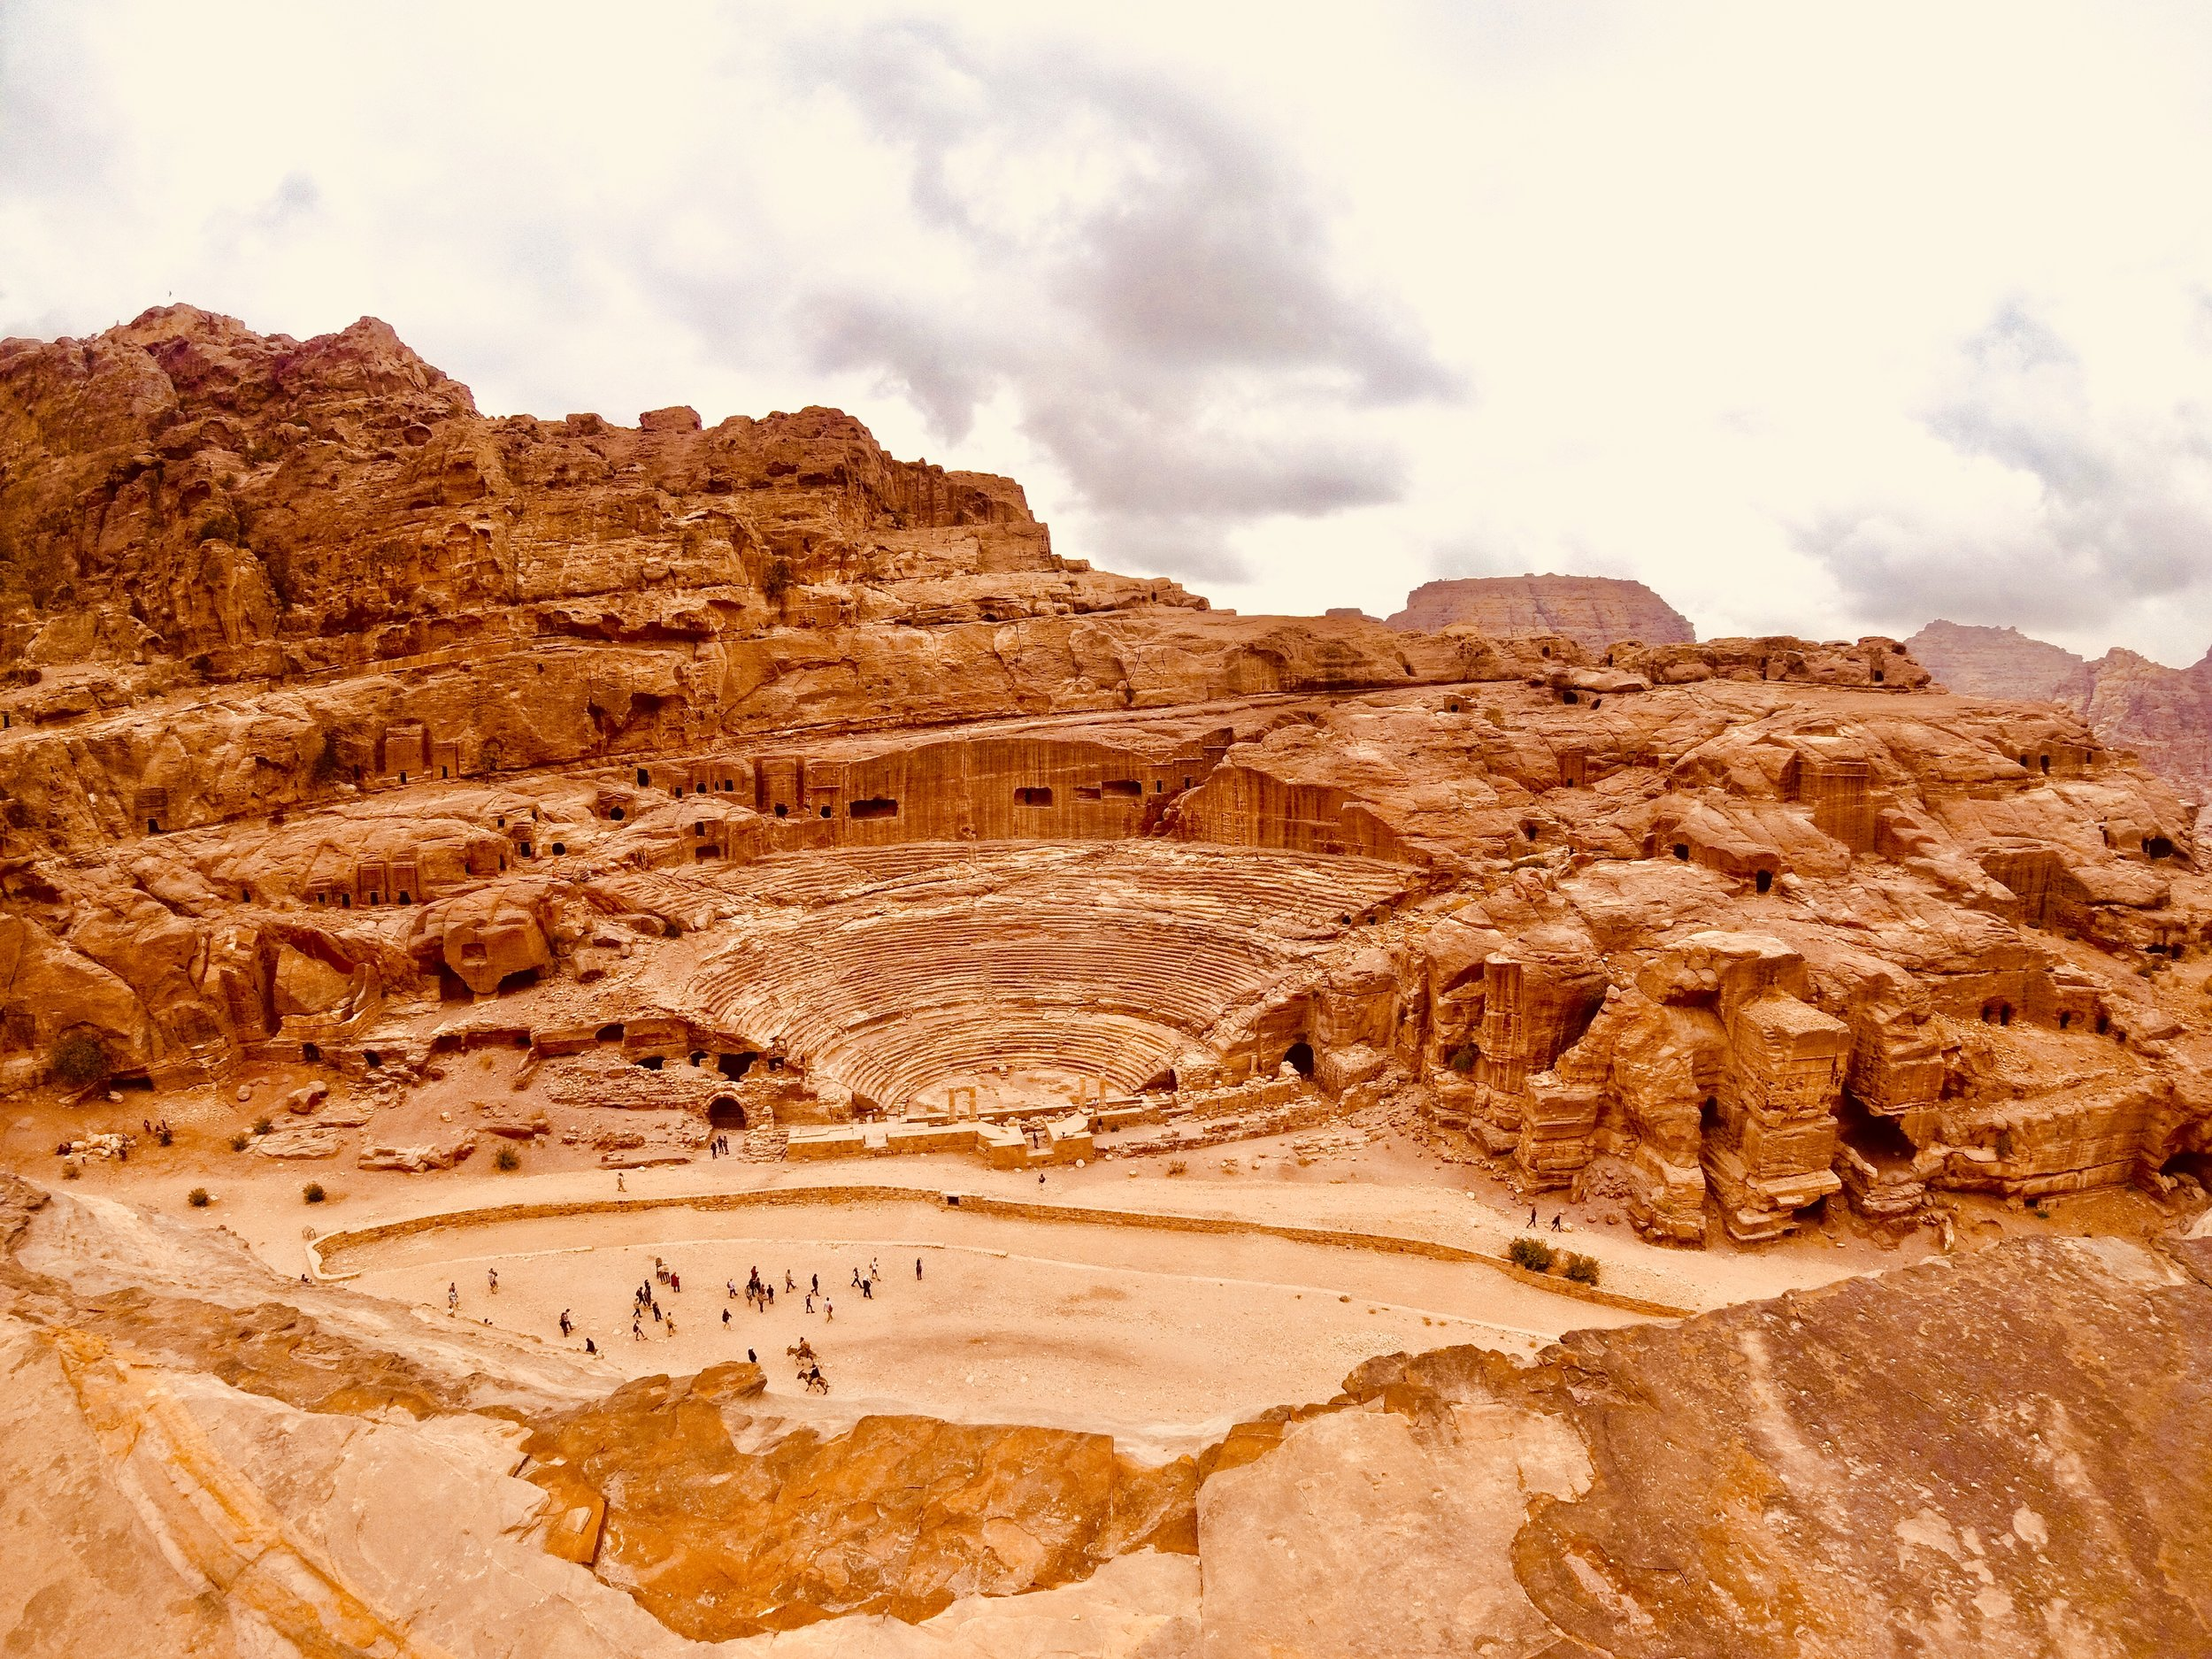 Petra & Beyond - experience the treasures of jordan with a small group of like-minded travelersOctober 6-15, 201910 days, 9 nights